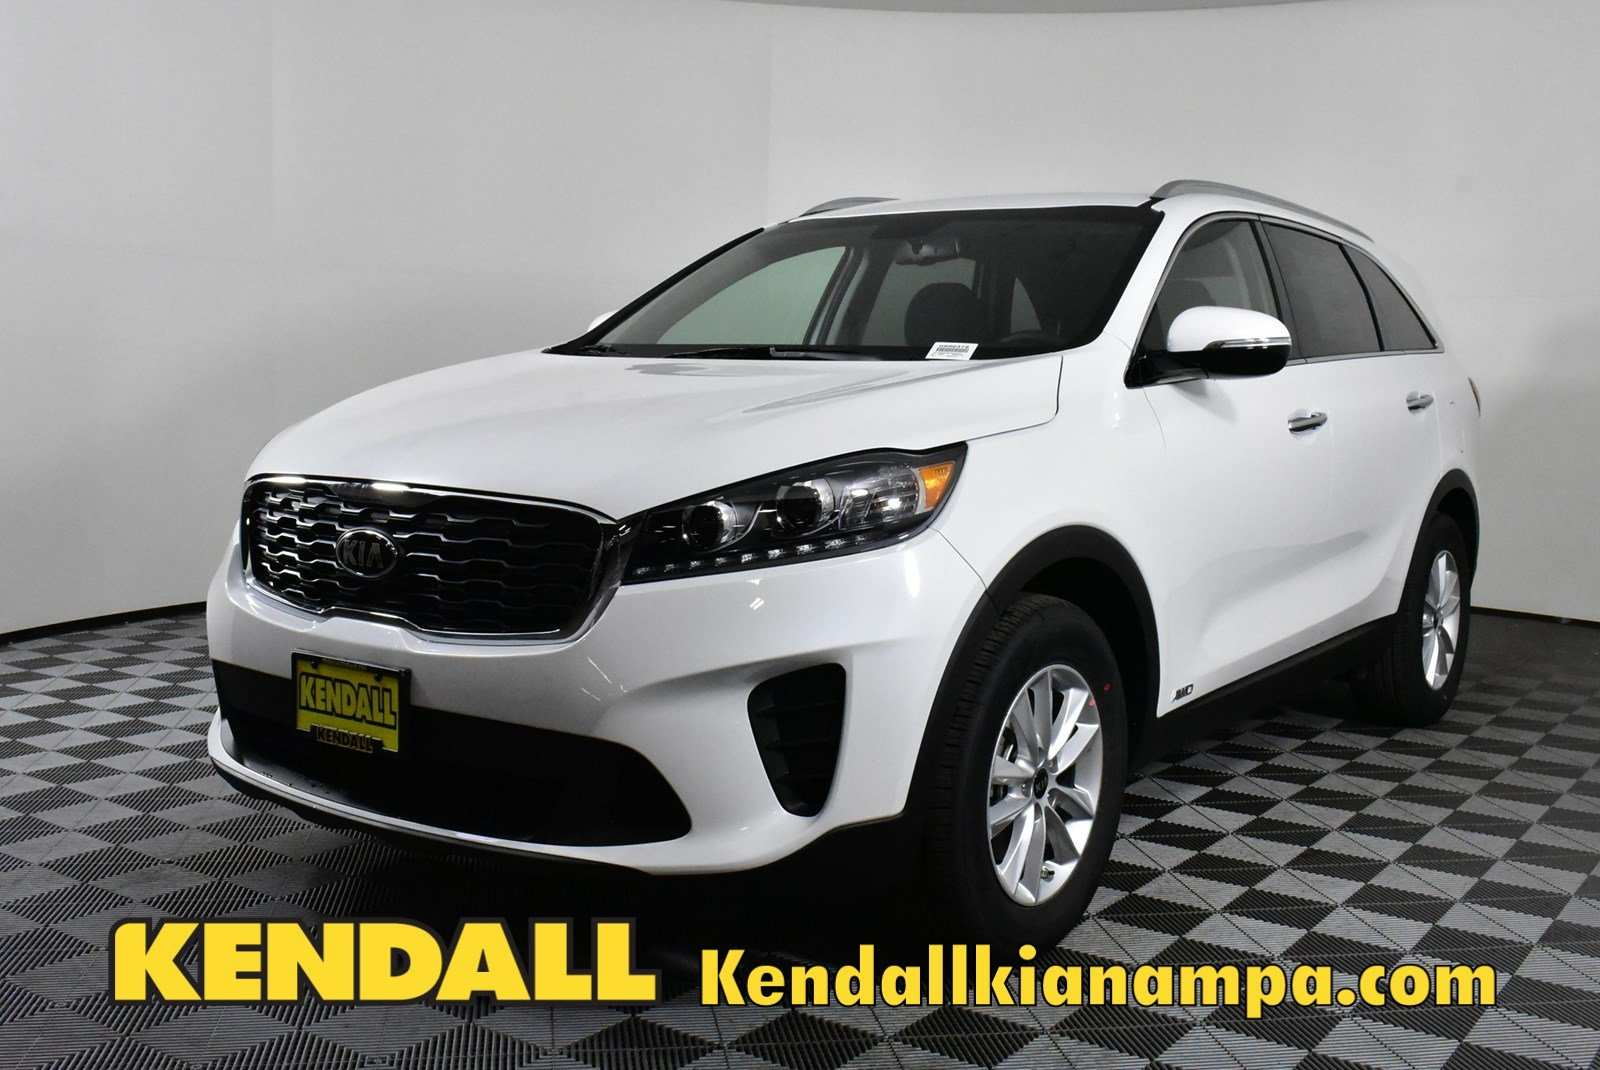 26 The Best 2019 Kia Sorento Trim Levels Prices